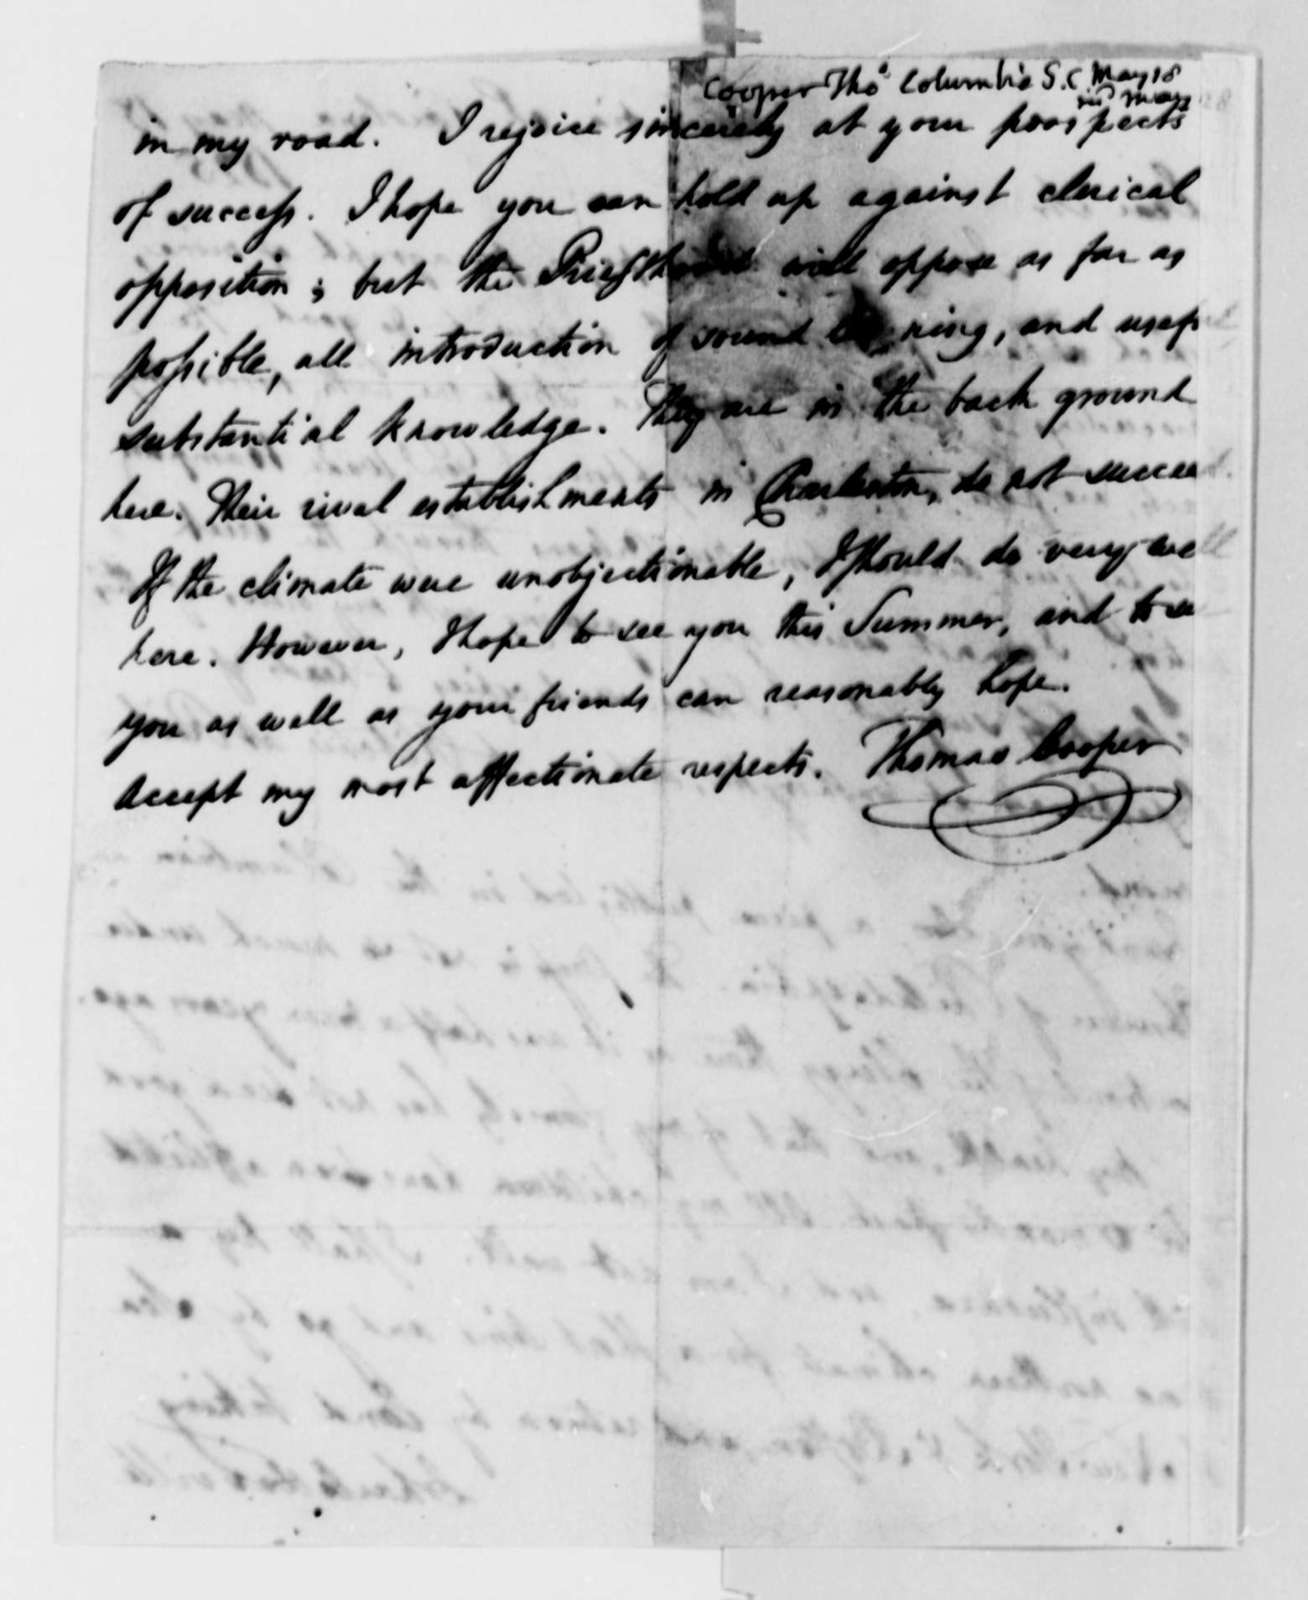 Thomas Cooper to Thomas Jefferson, May 18, 1825